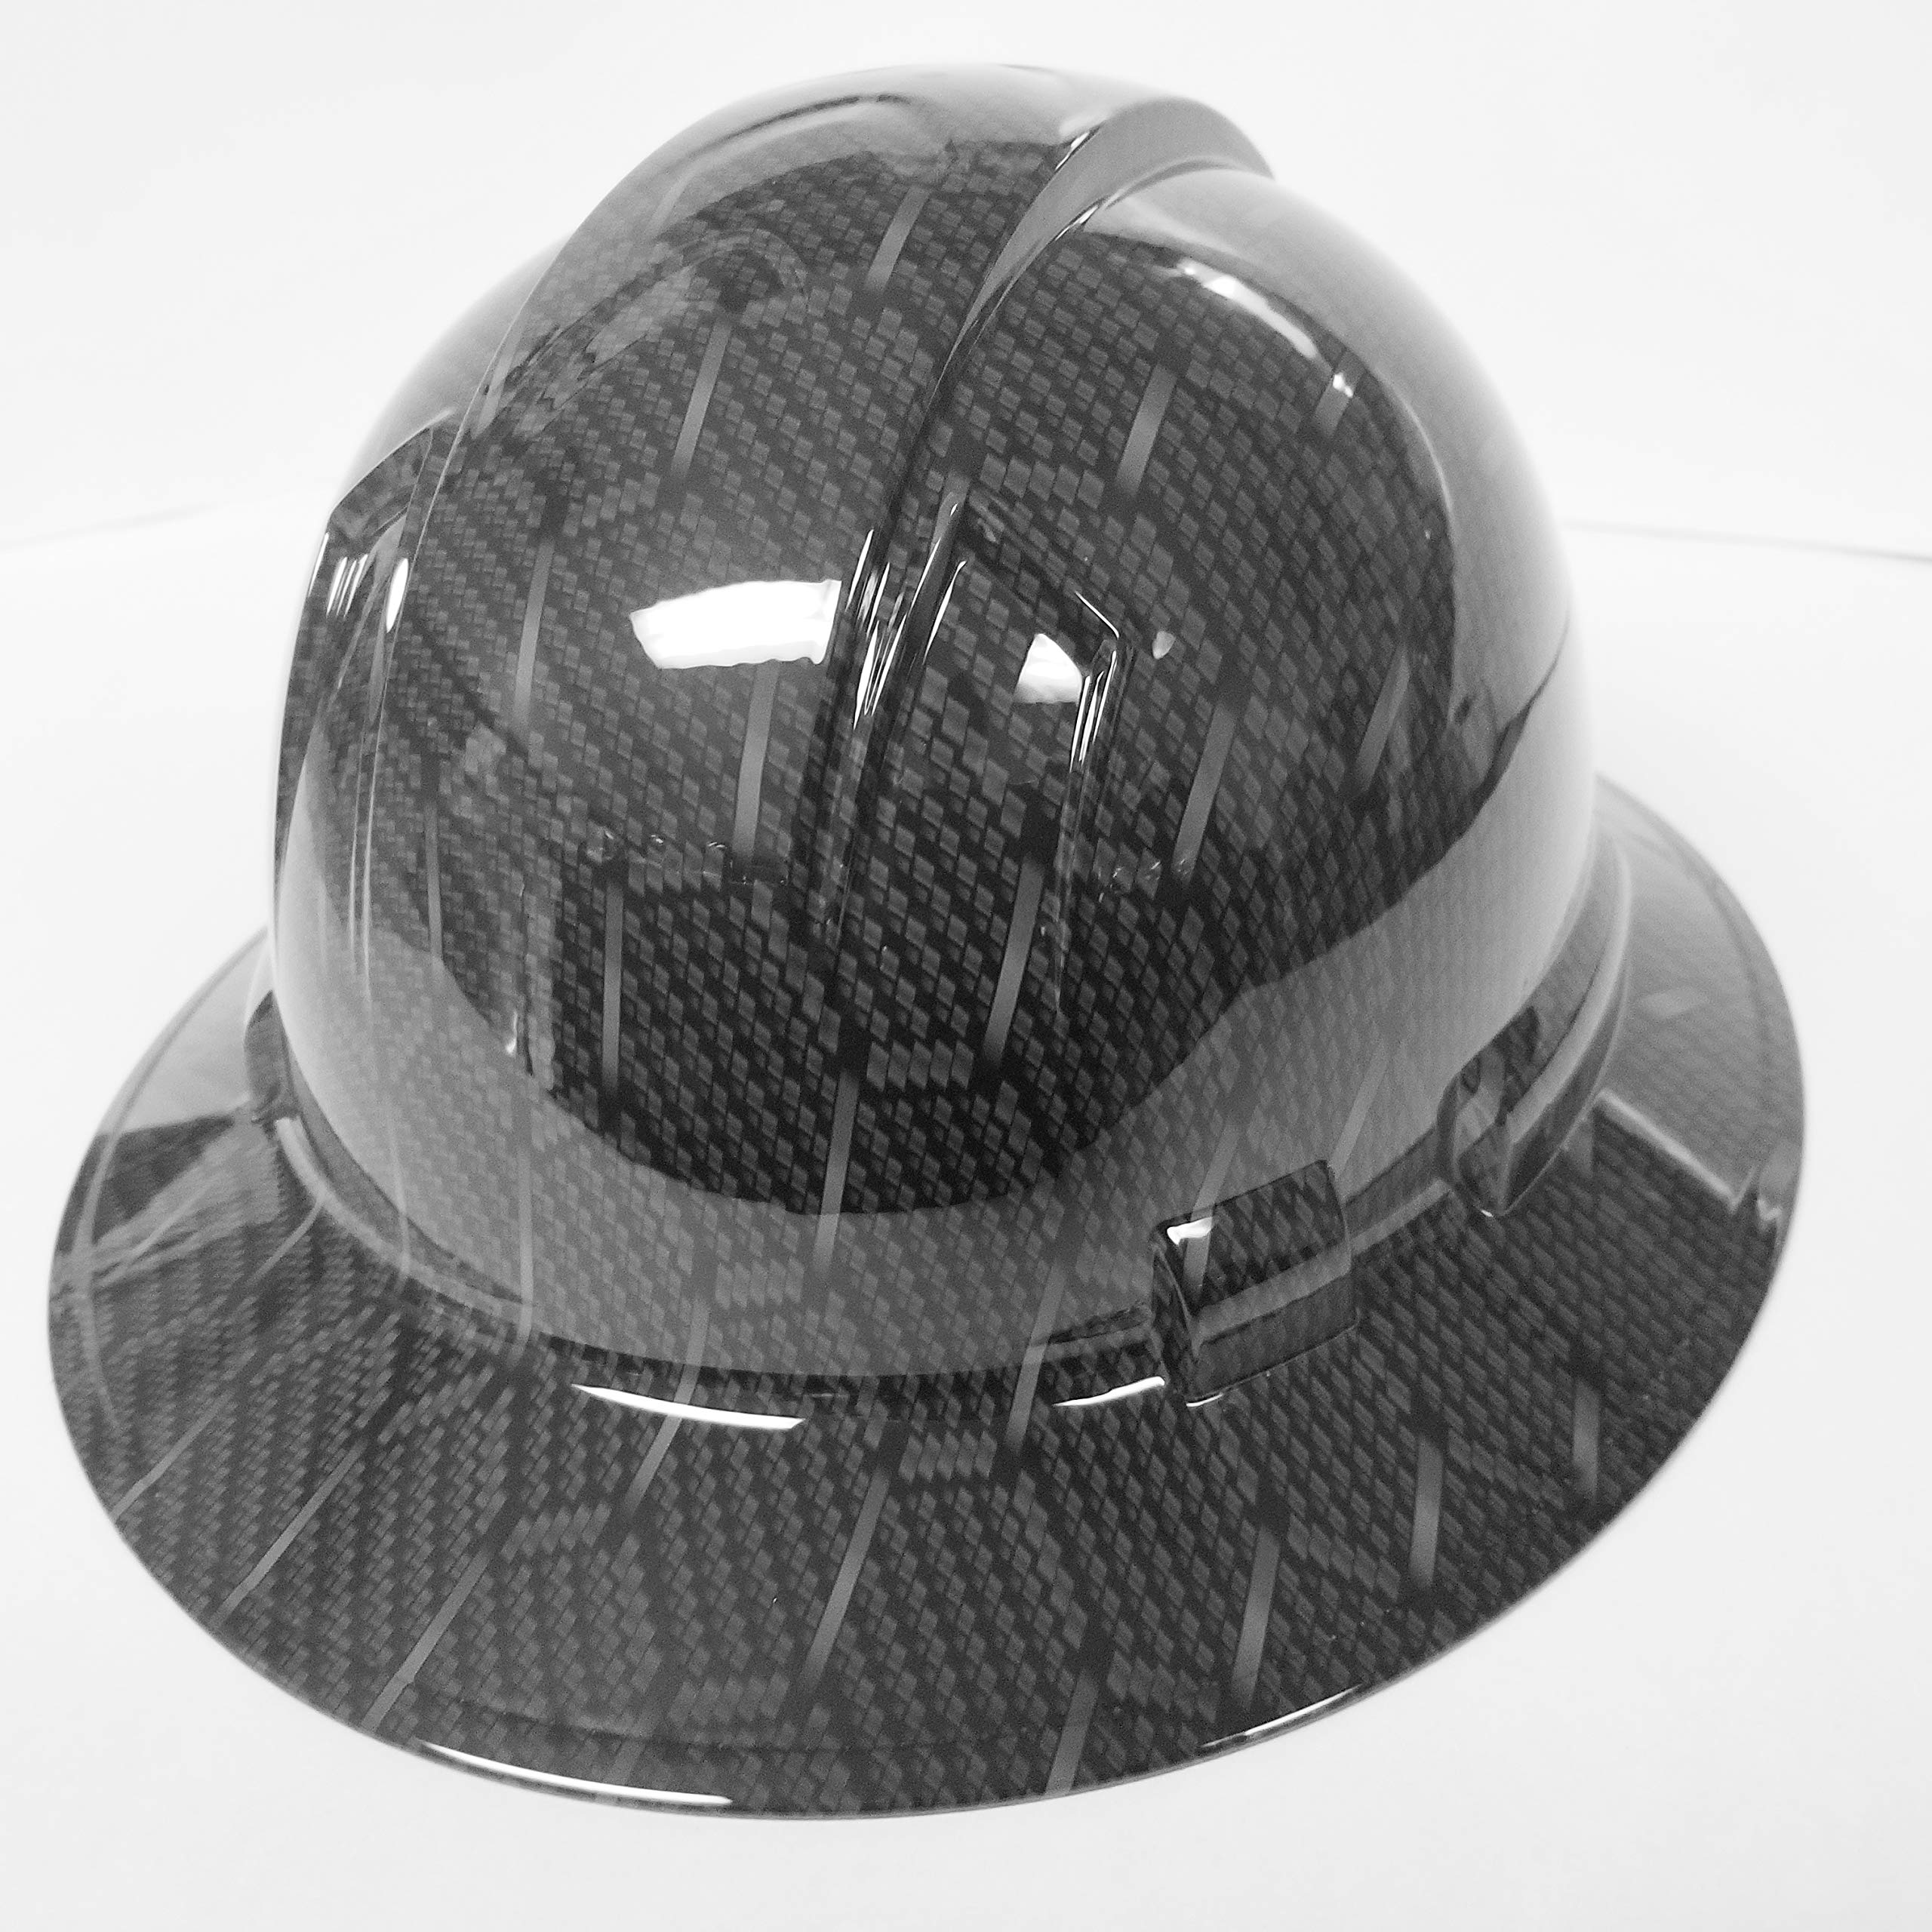 Wet Works Imaging Customized Pyramex Full Brim HEX Weave Carbon Fiber 3D Limited Hard HAT with Ratcheting Suspension Custom LIDS Crazy Sick Construction PPE by Wet Works Imaging (Image #4)